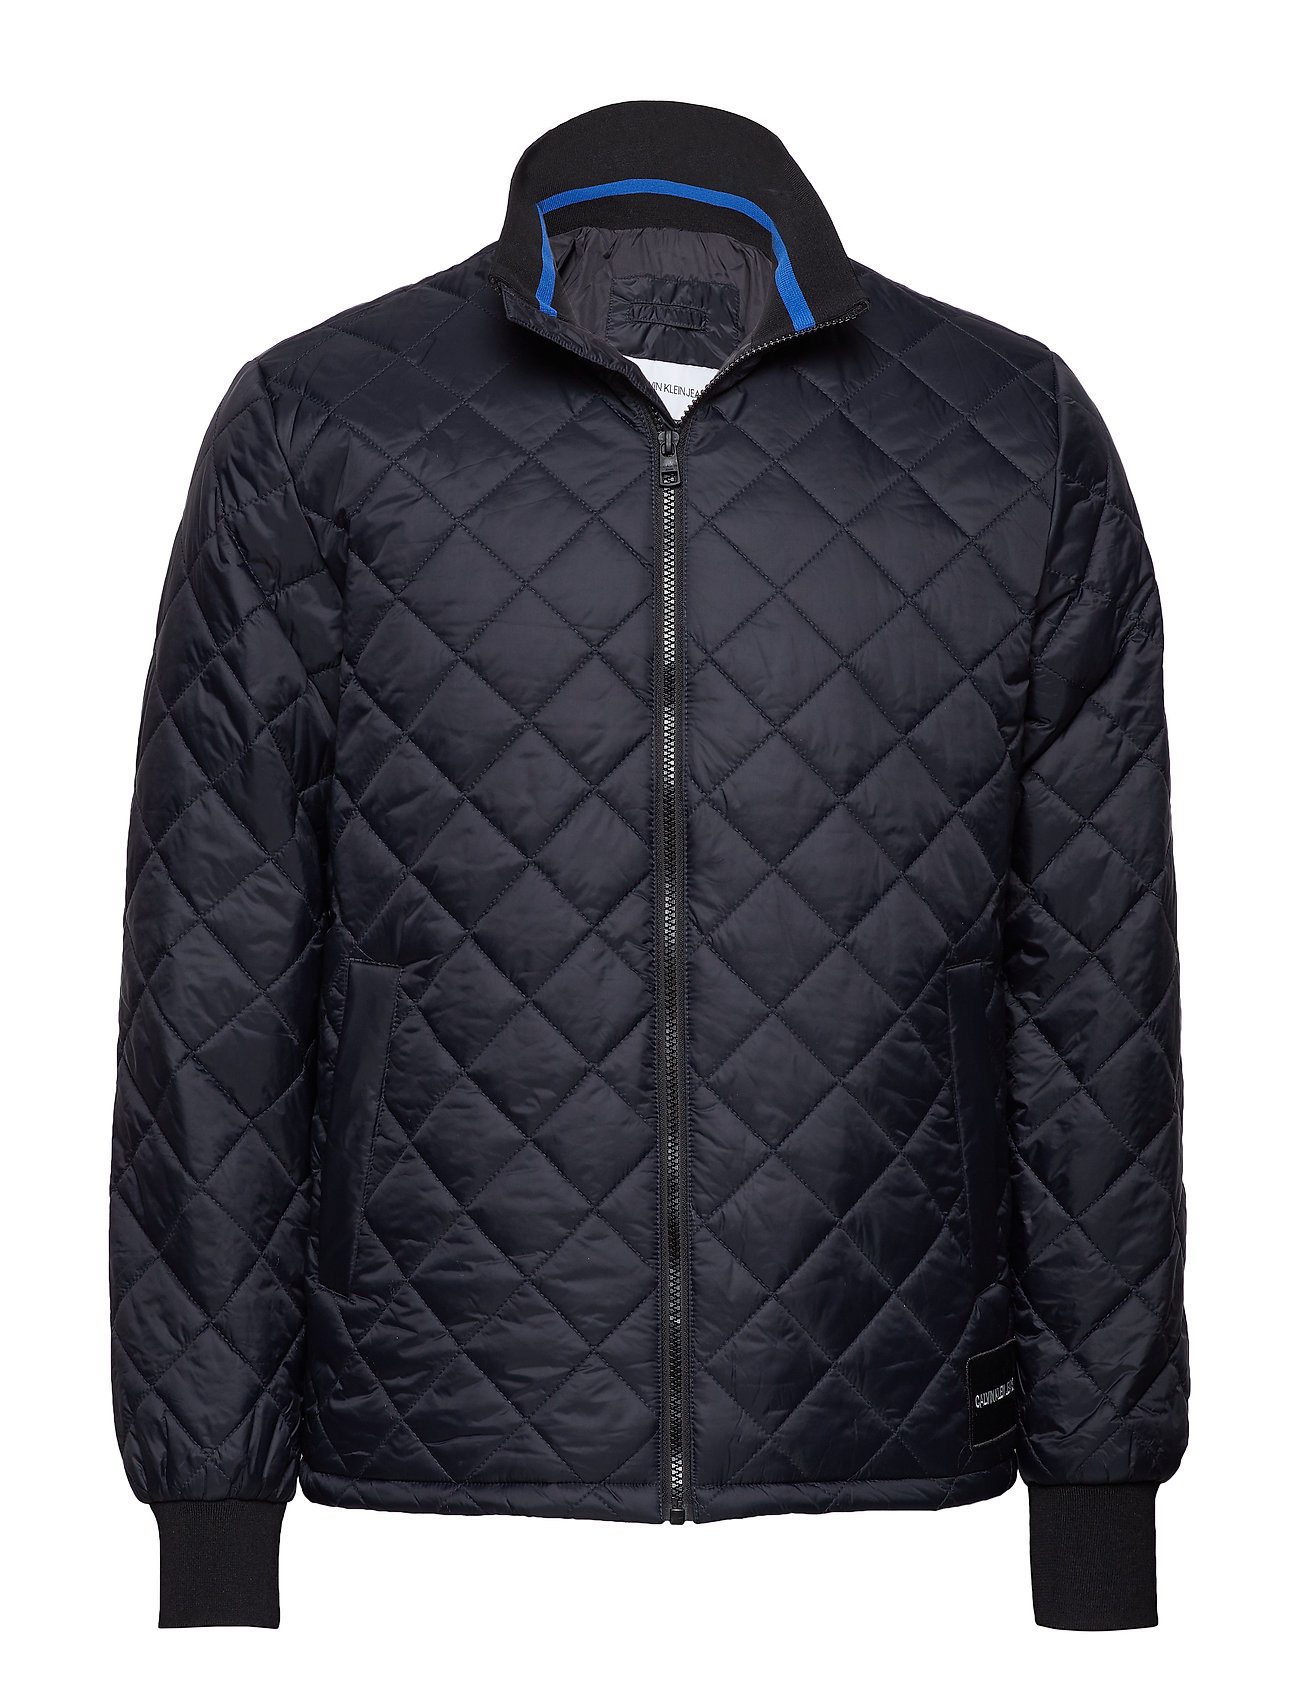 Klein BlackCalvin Jeans Jeans Quilted Jacketck Quilted Jacketck BlackCalvin Jacketck Klein Klein BlackCalvin Quilted 0v8mwNn